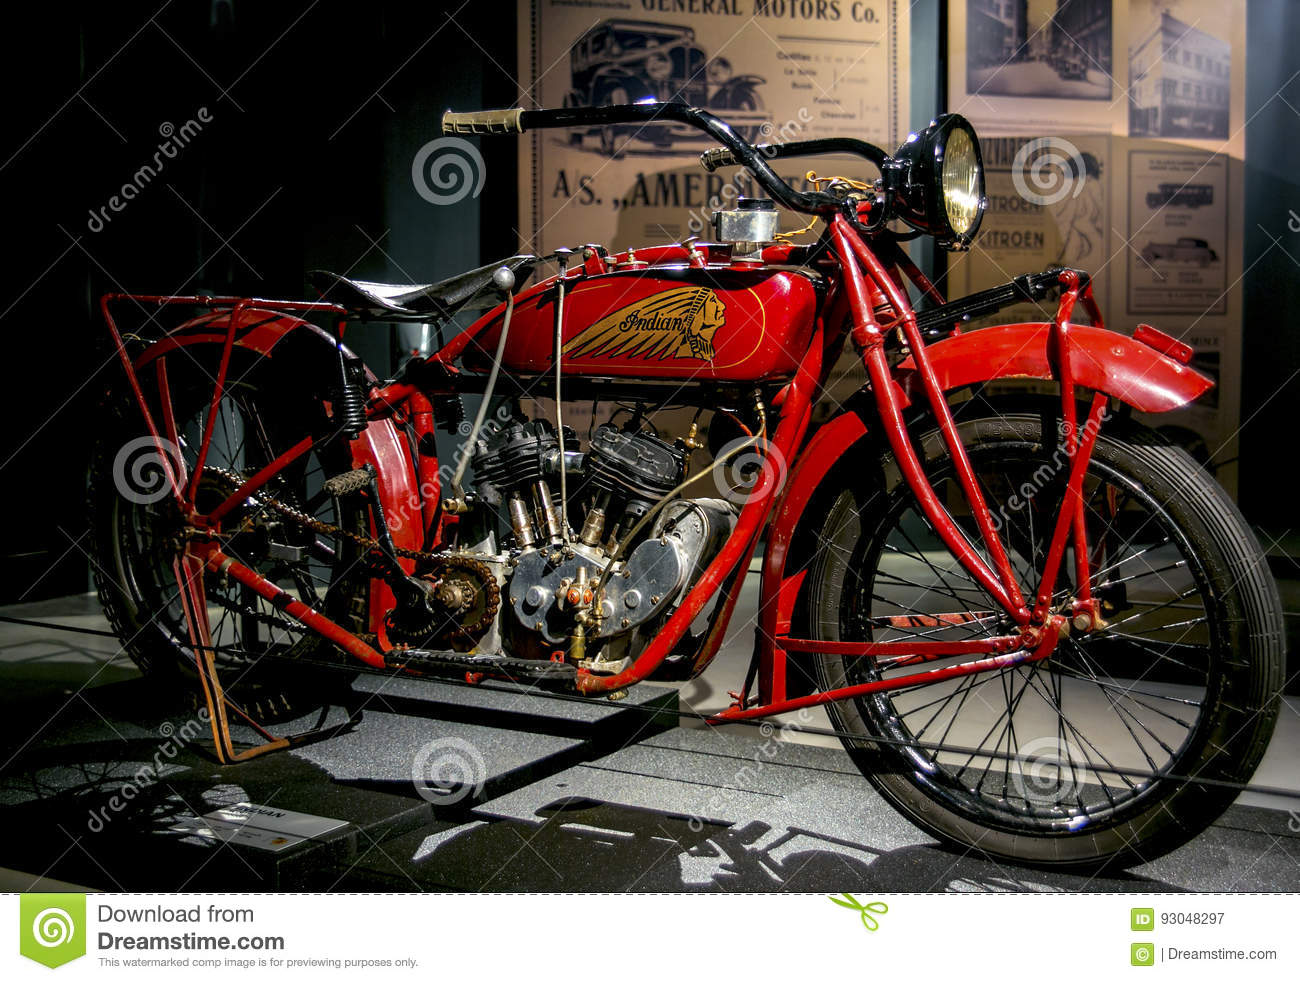 Indian Scout 600cc Motorcycle Auctions - Lot AA - Shannons